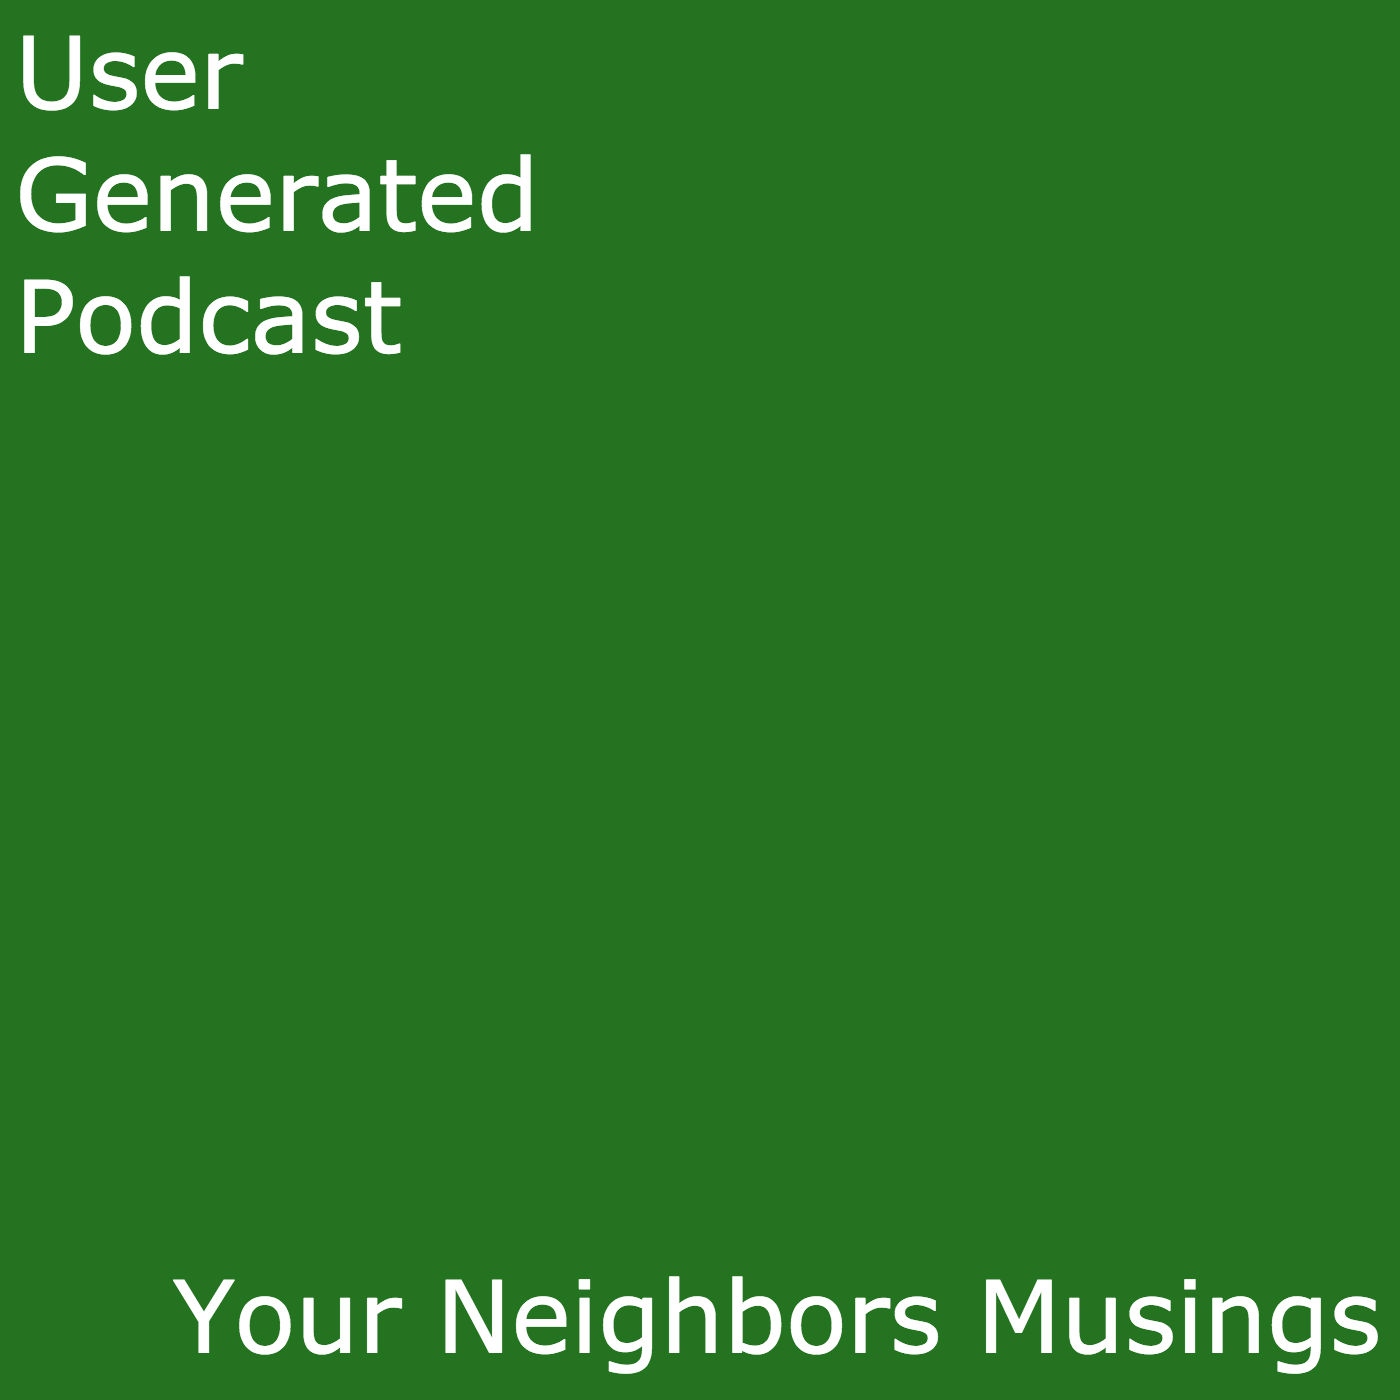 User Generated Podcast